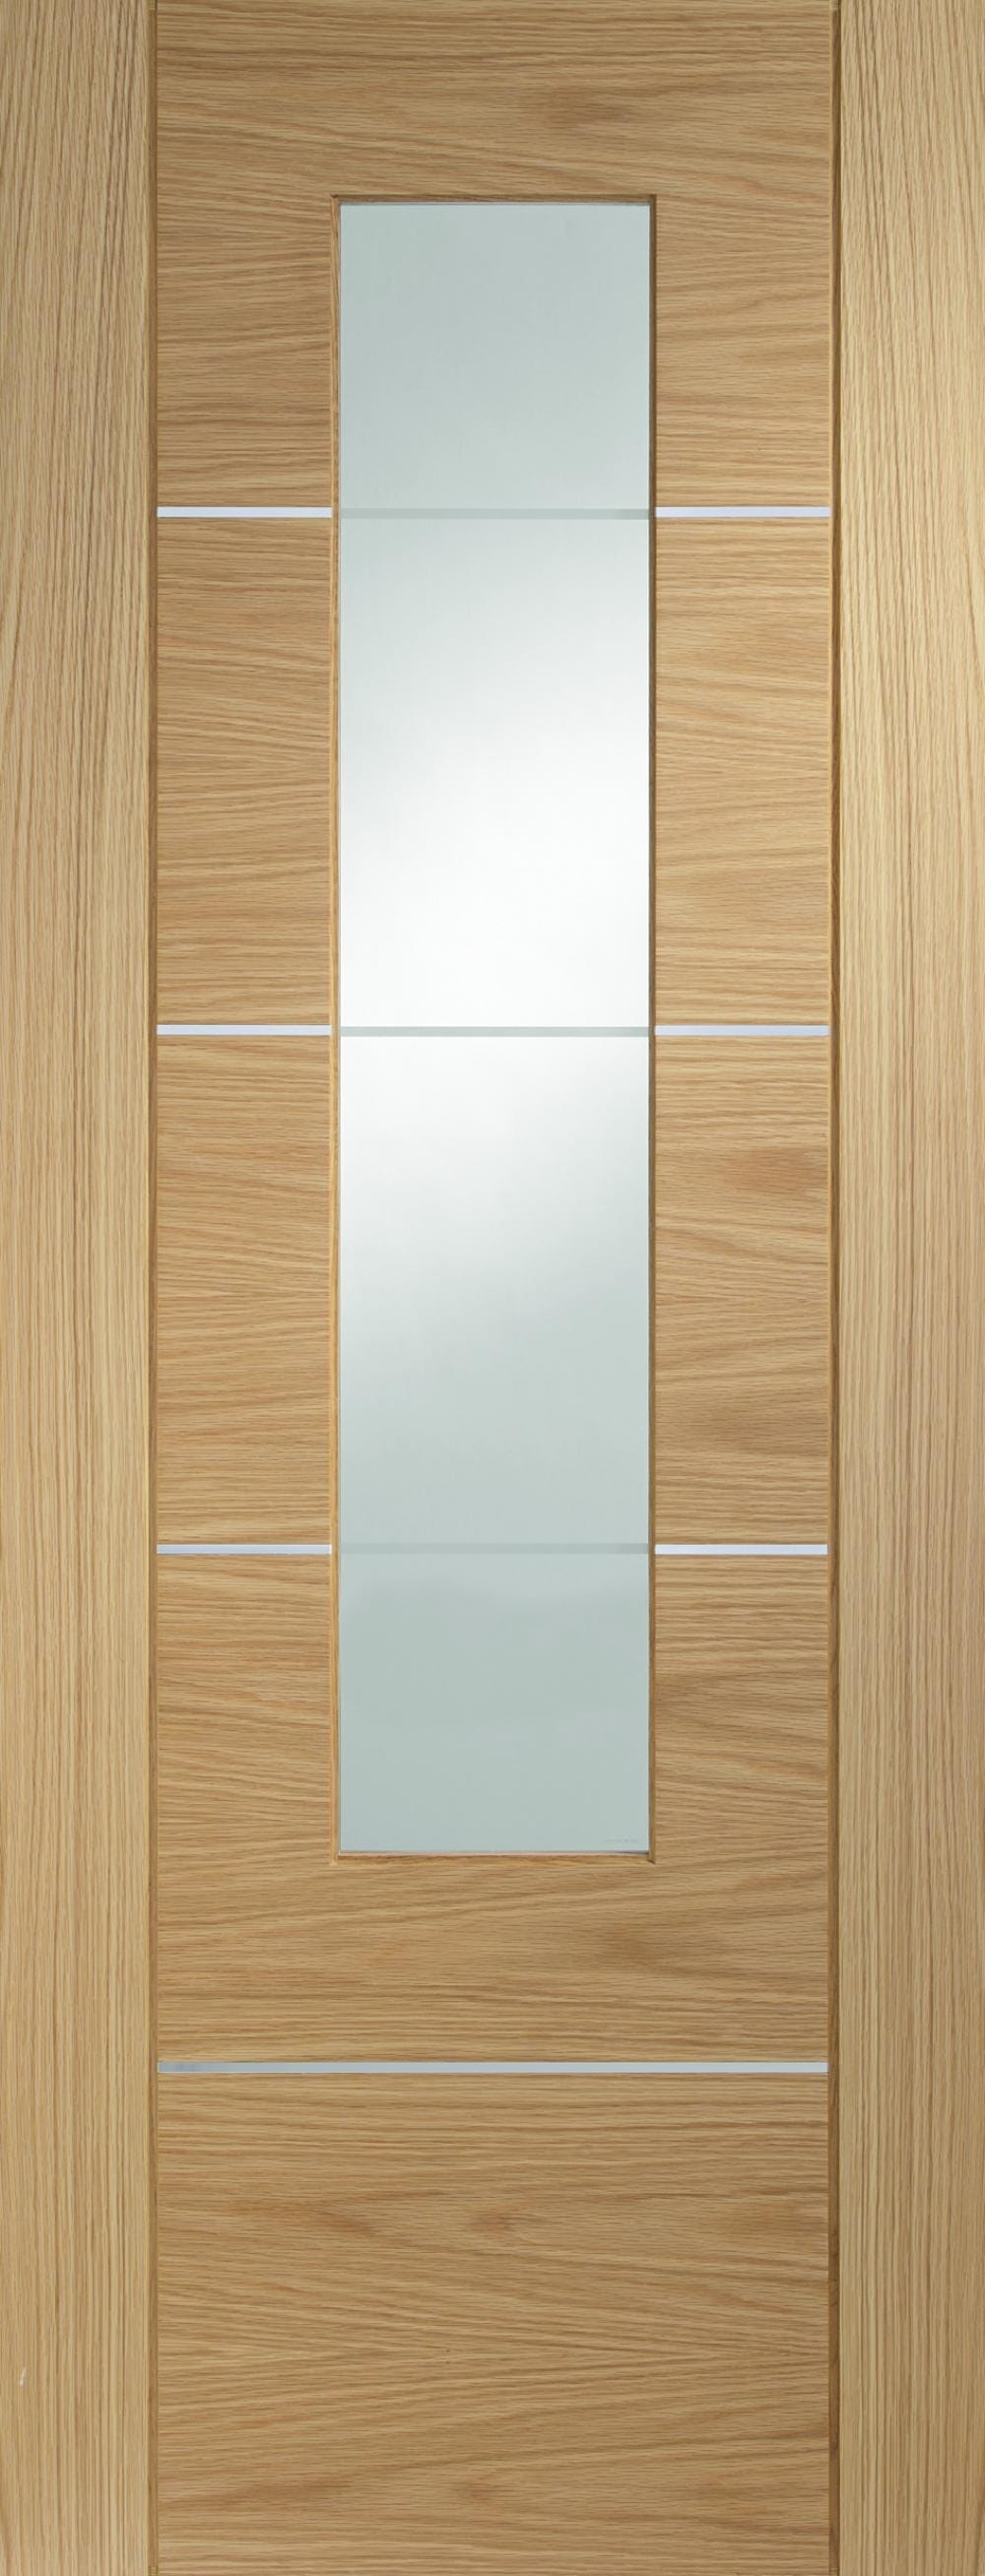 Portici Oak - Prefinished Clear Glass Image